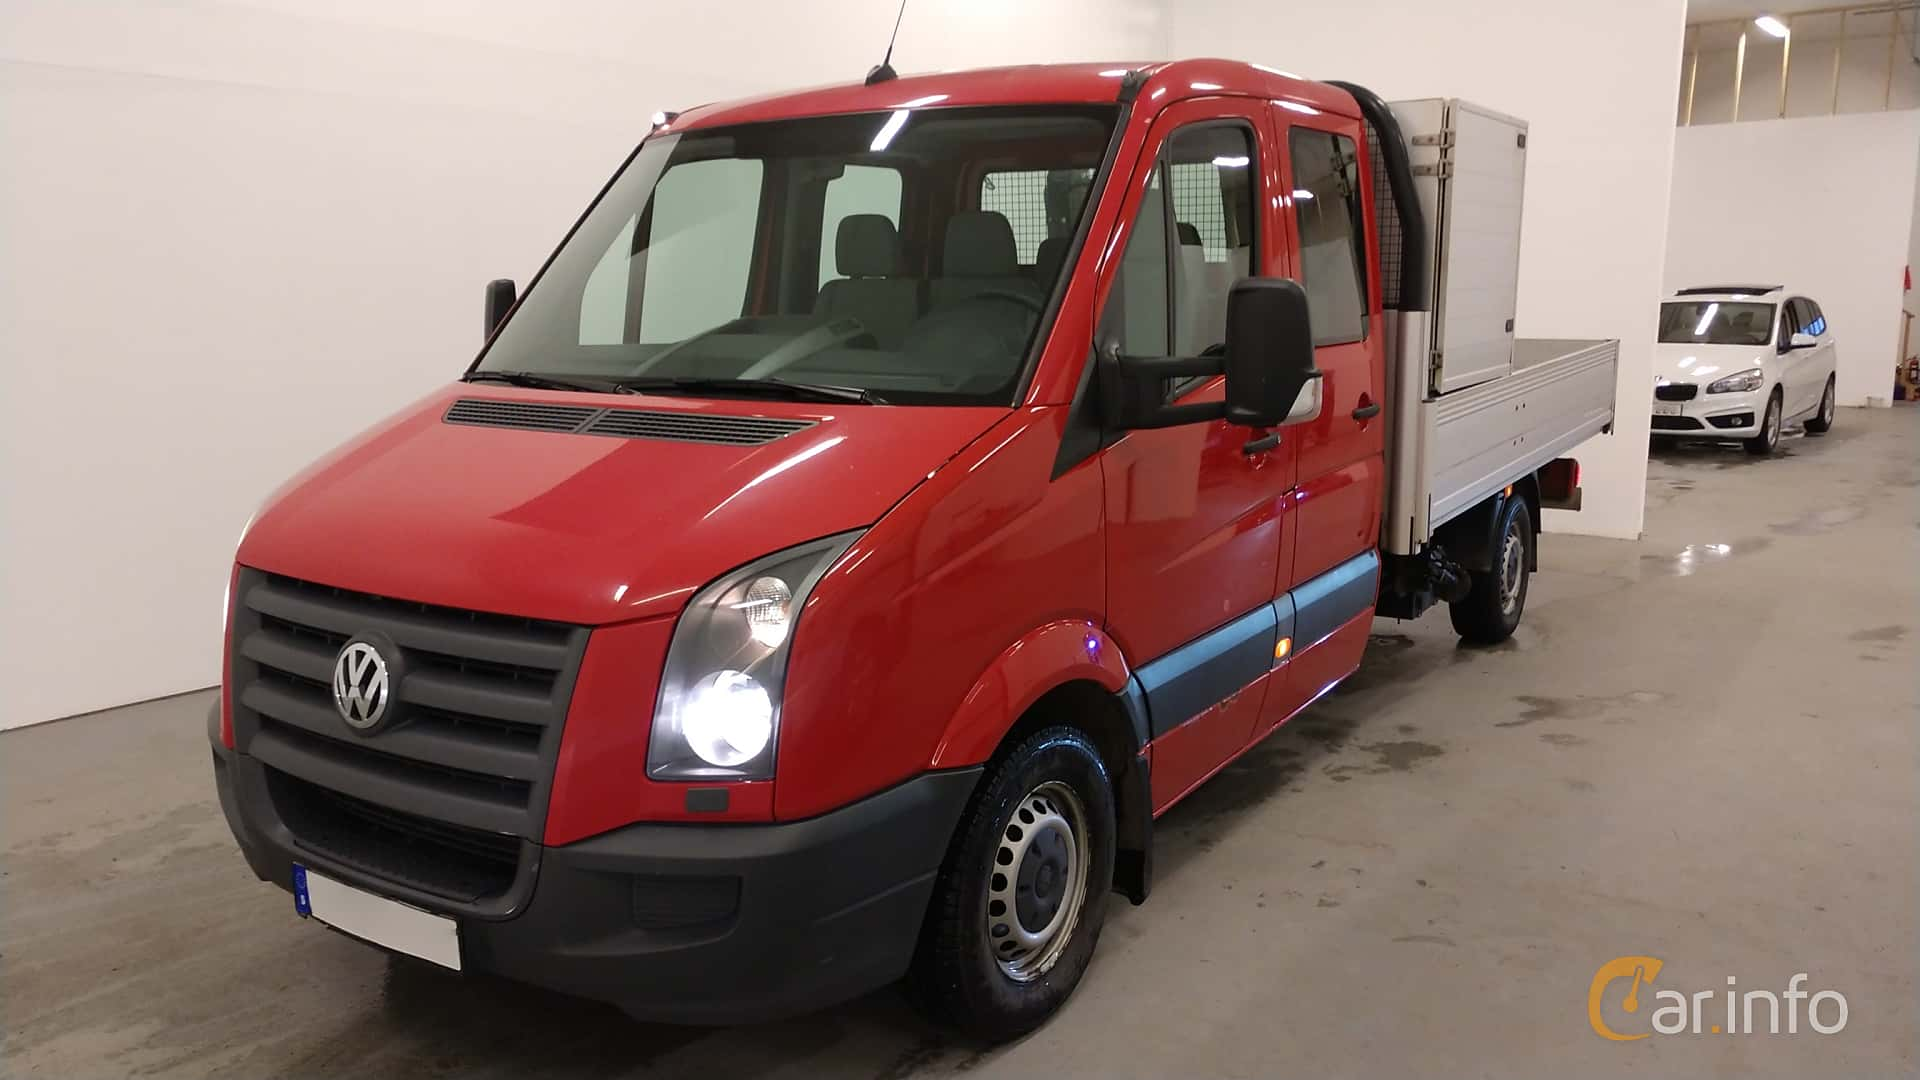 Volkswagen Crafter Chassi Double Cab 2.5 TDI Manuell, 109hk, 2009